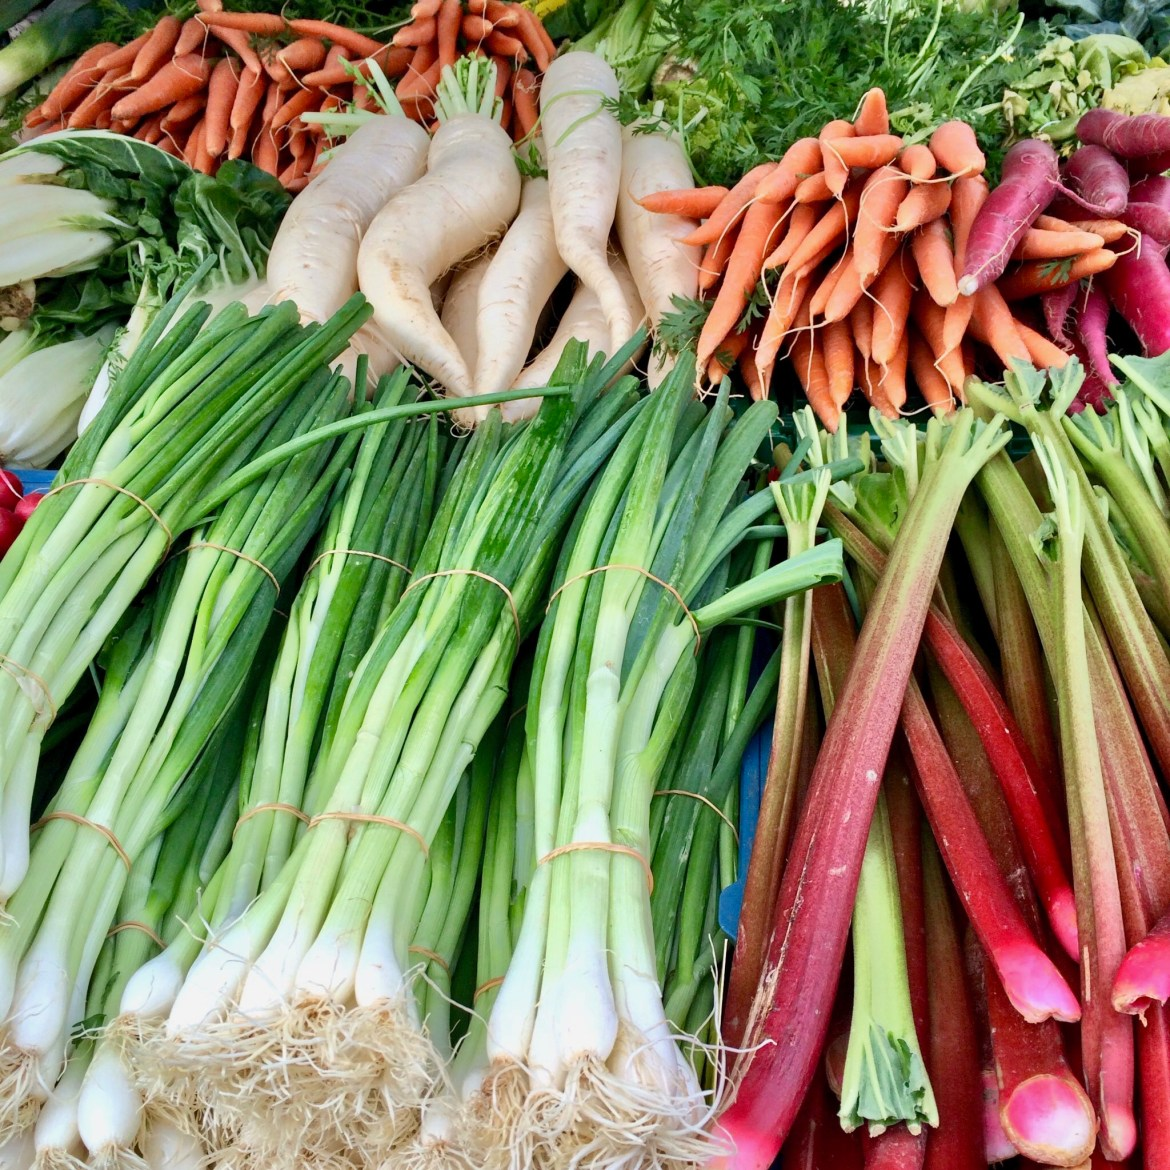 Piles of spring onions, rhubarb, carrots and radishes at the market